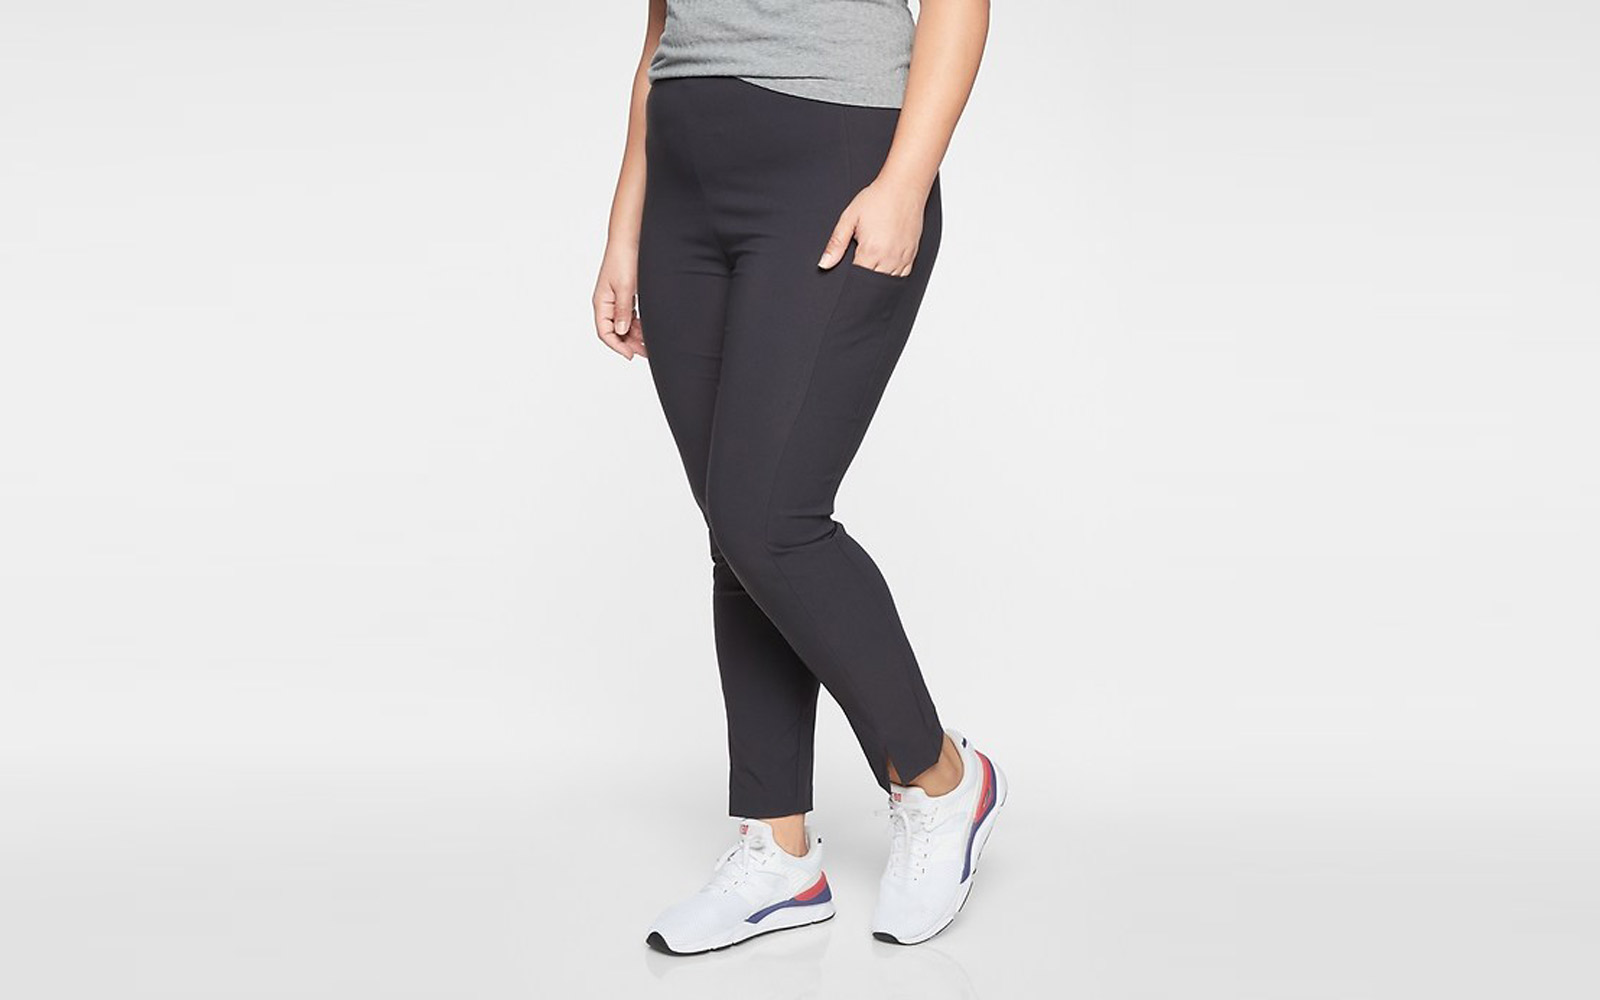 7d82891c72 The Best Travel Pants for Women Who Hate Flying in Jeans | Travel + Leisure